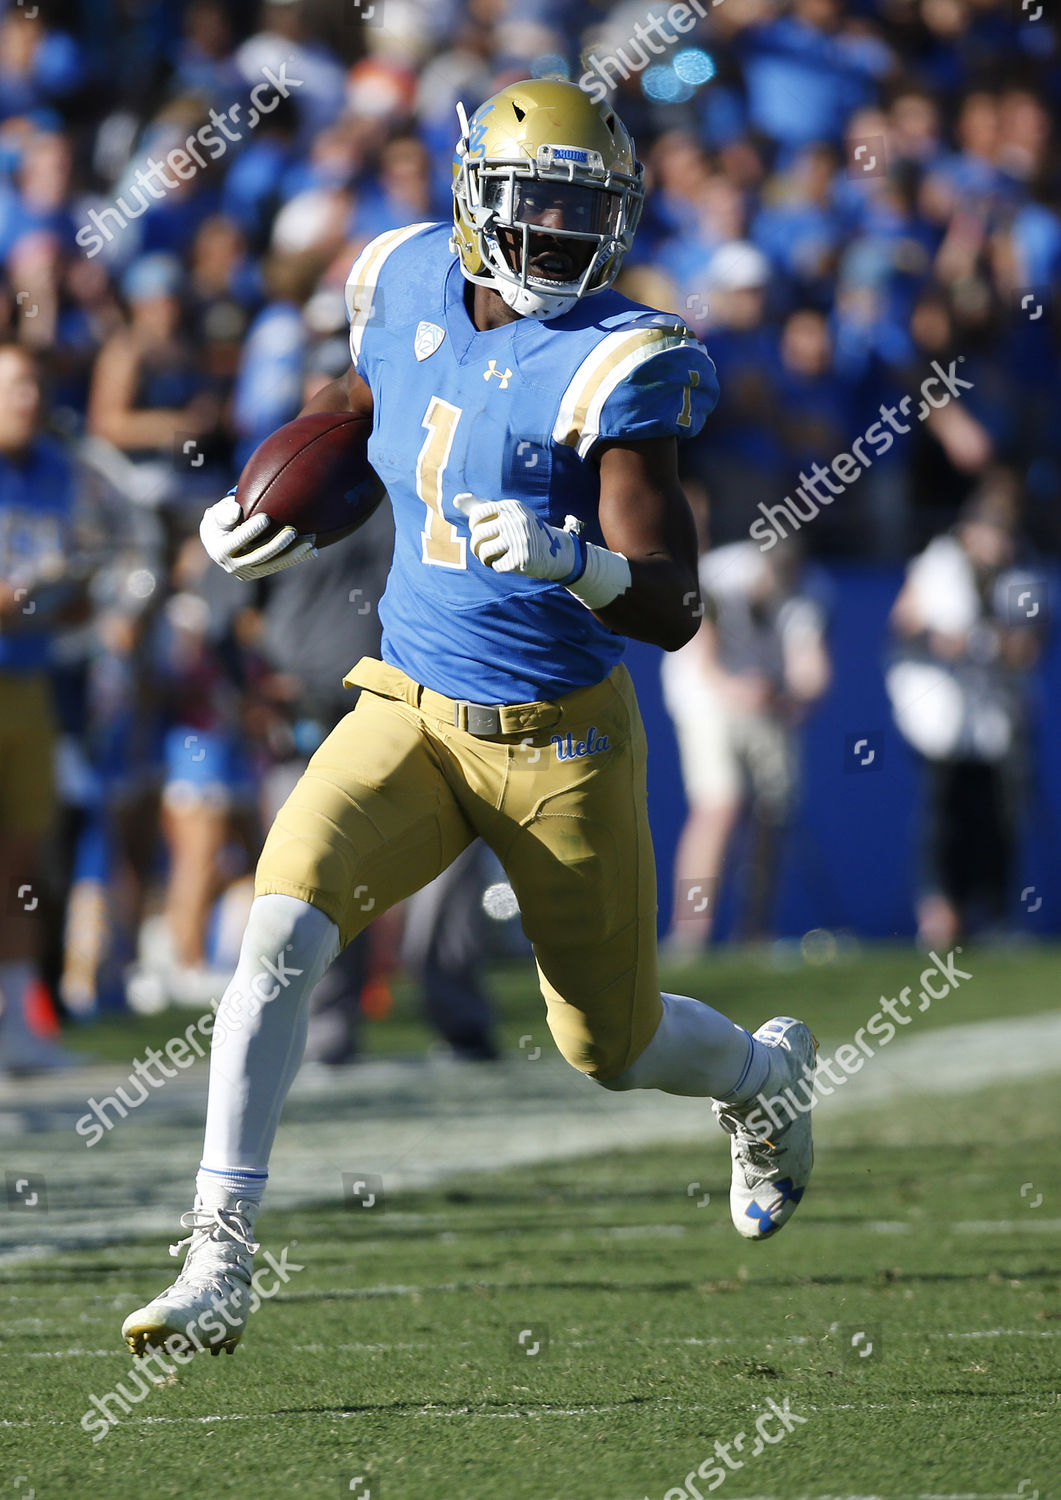 sale retailer a2c4a c9c4a UCLA Bruins running back Soso Jamabo 1 Editorial Stock Photo ...